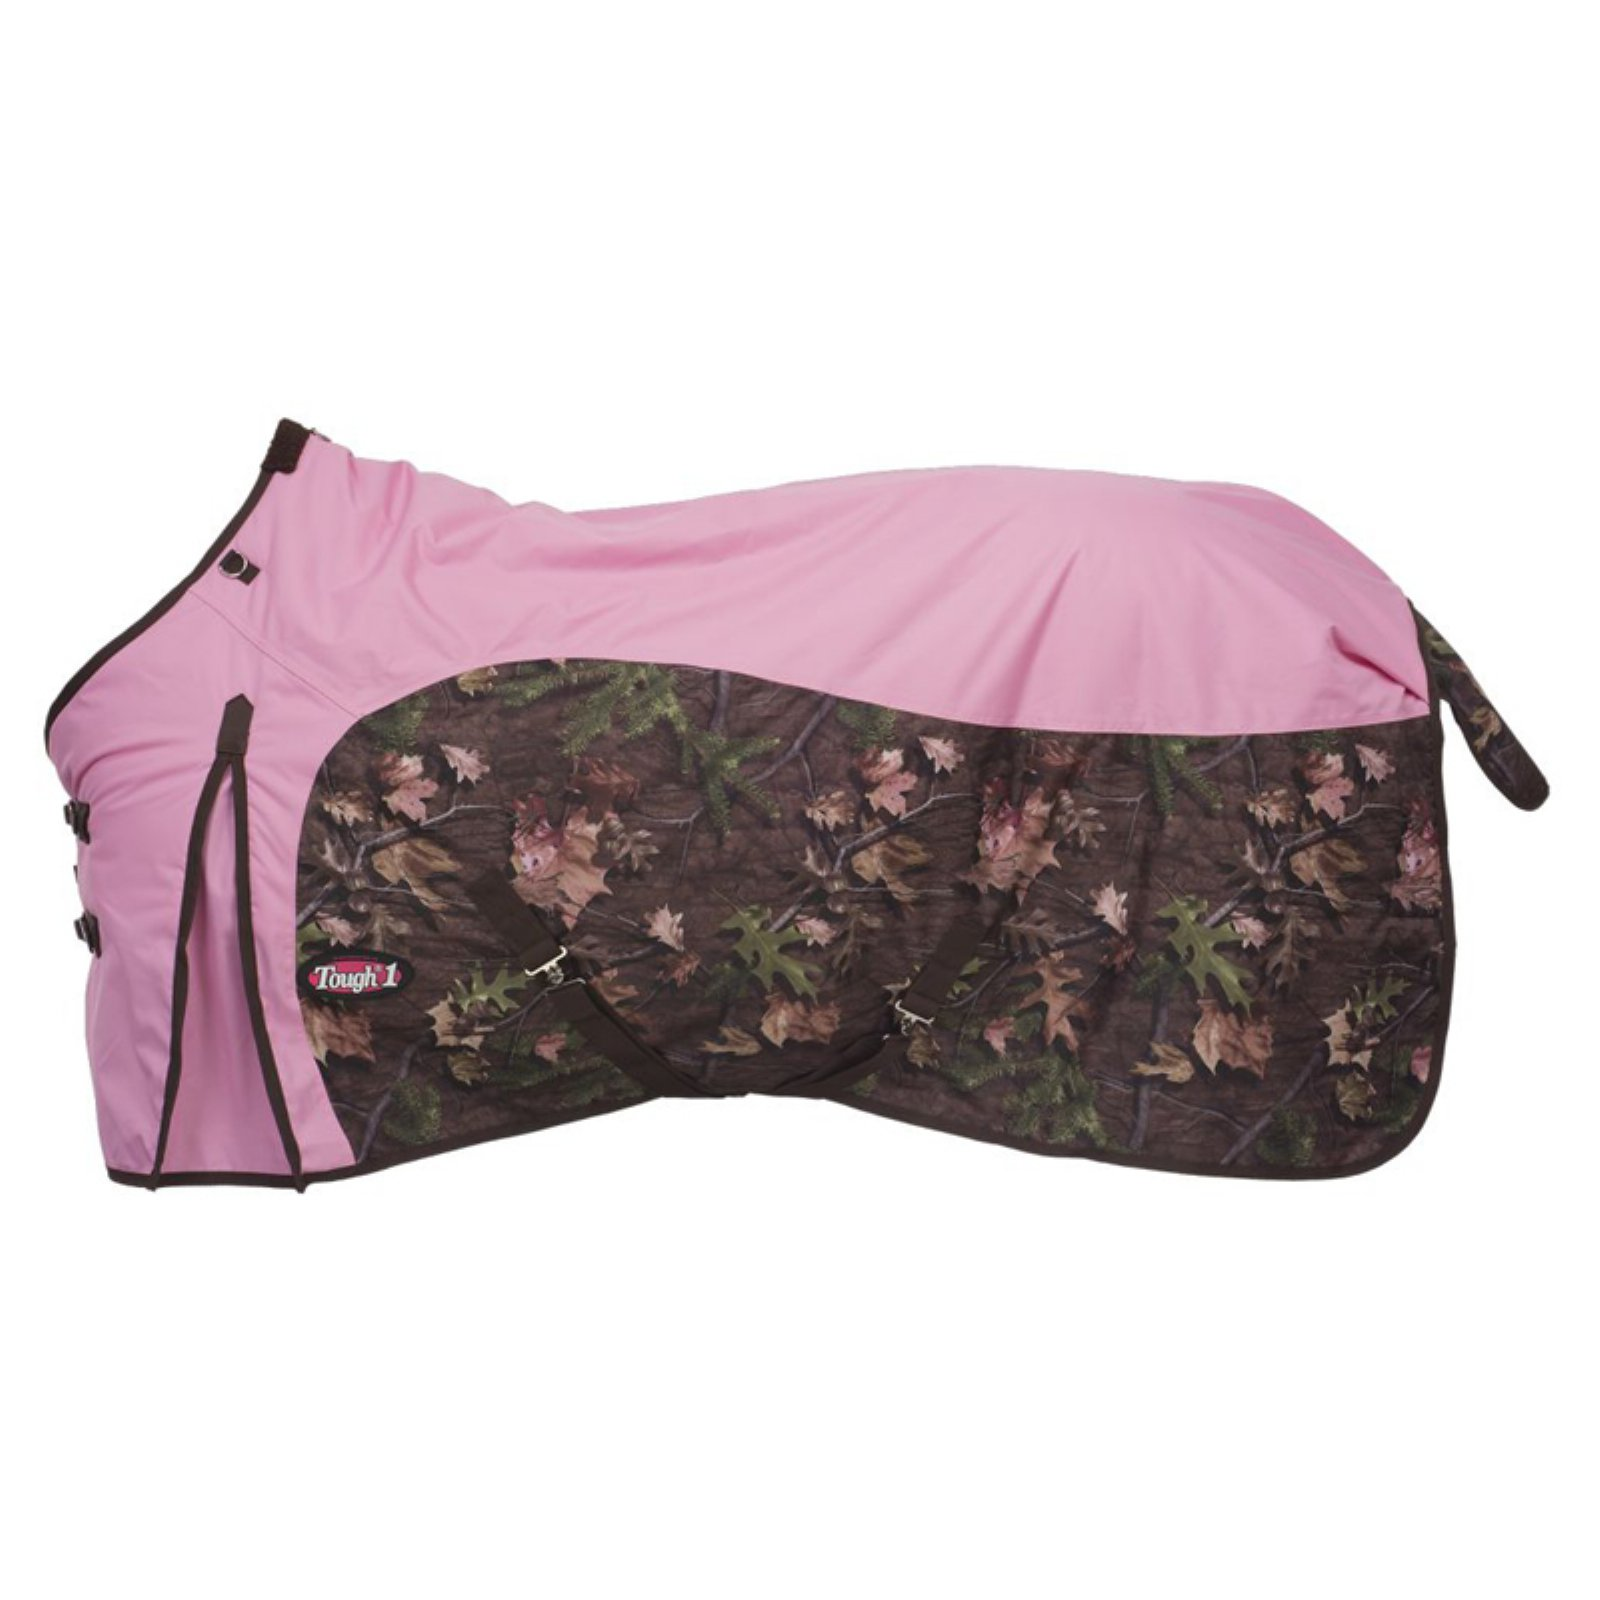 Tough-1 Tough Timber 600D Waterproof Poly Turnout Blanket